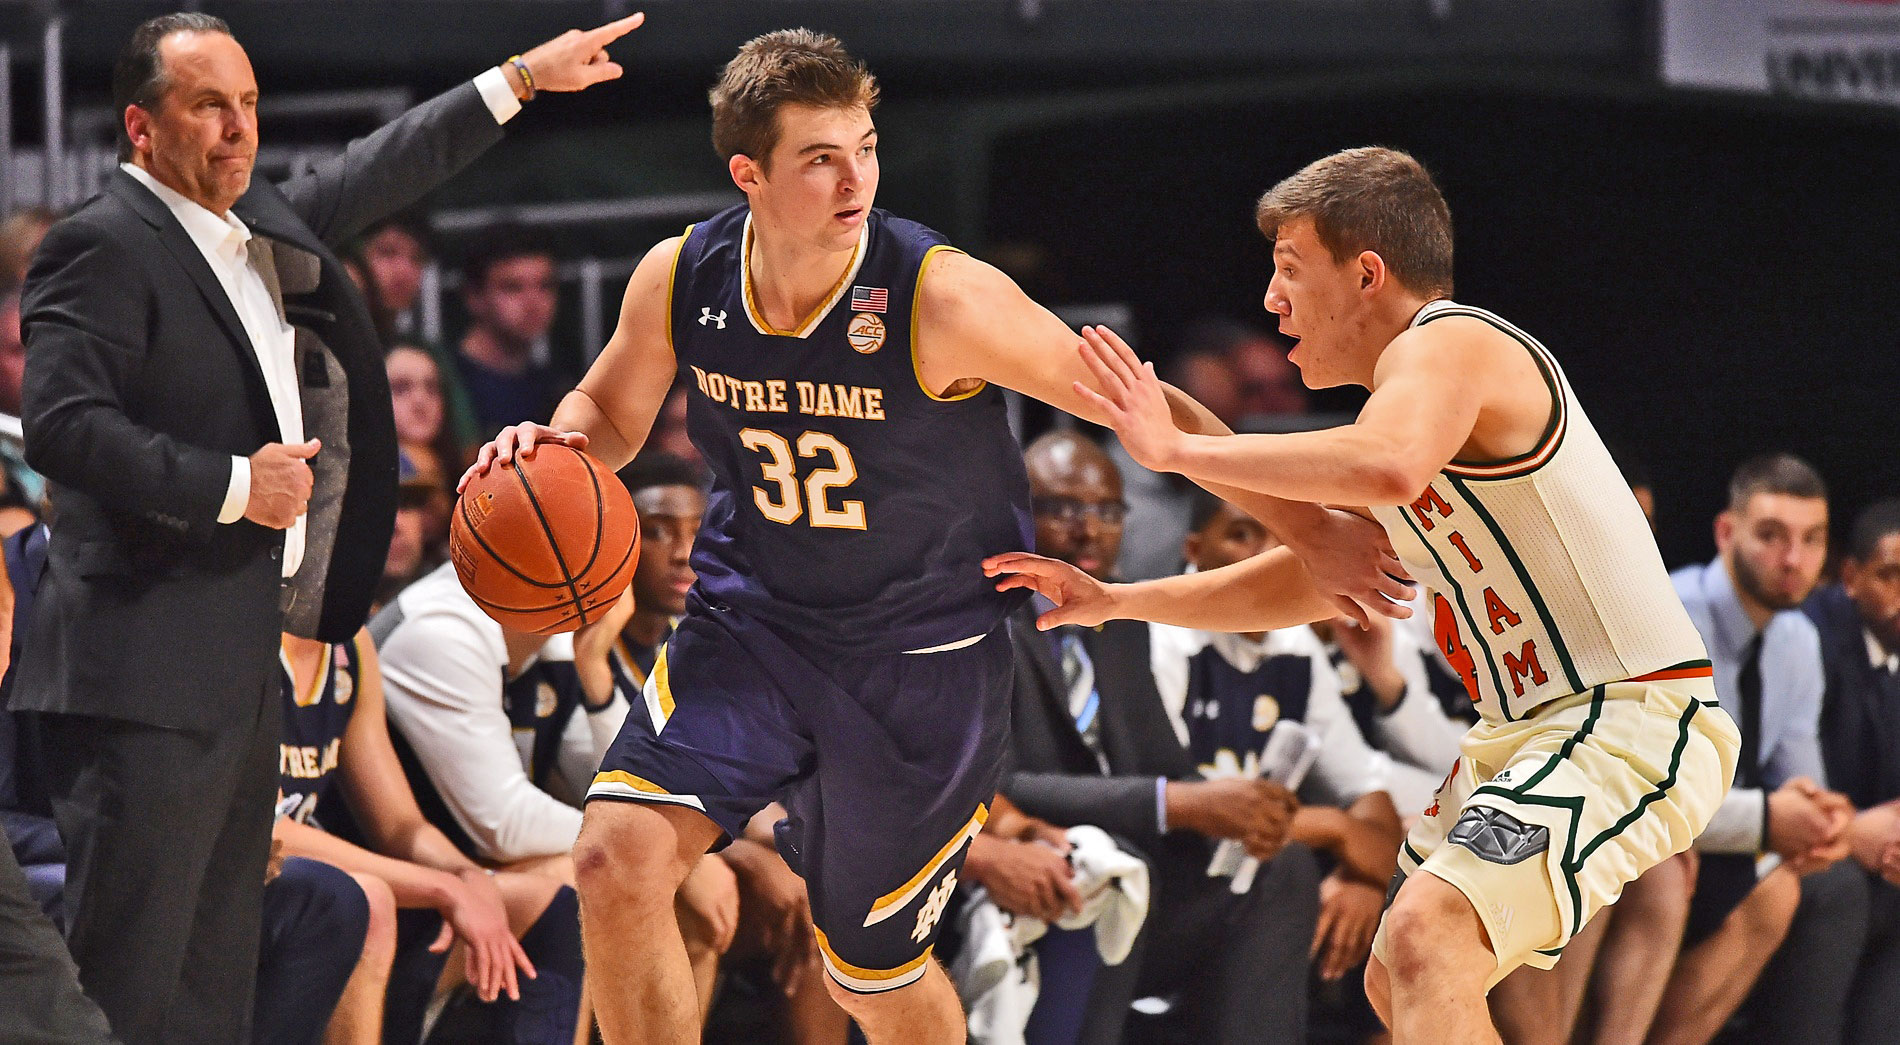 Notre-dame-miami-bball-highlights